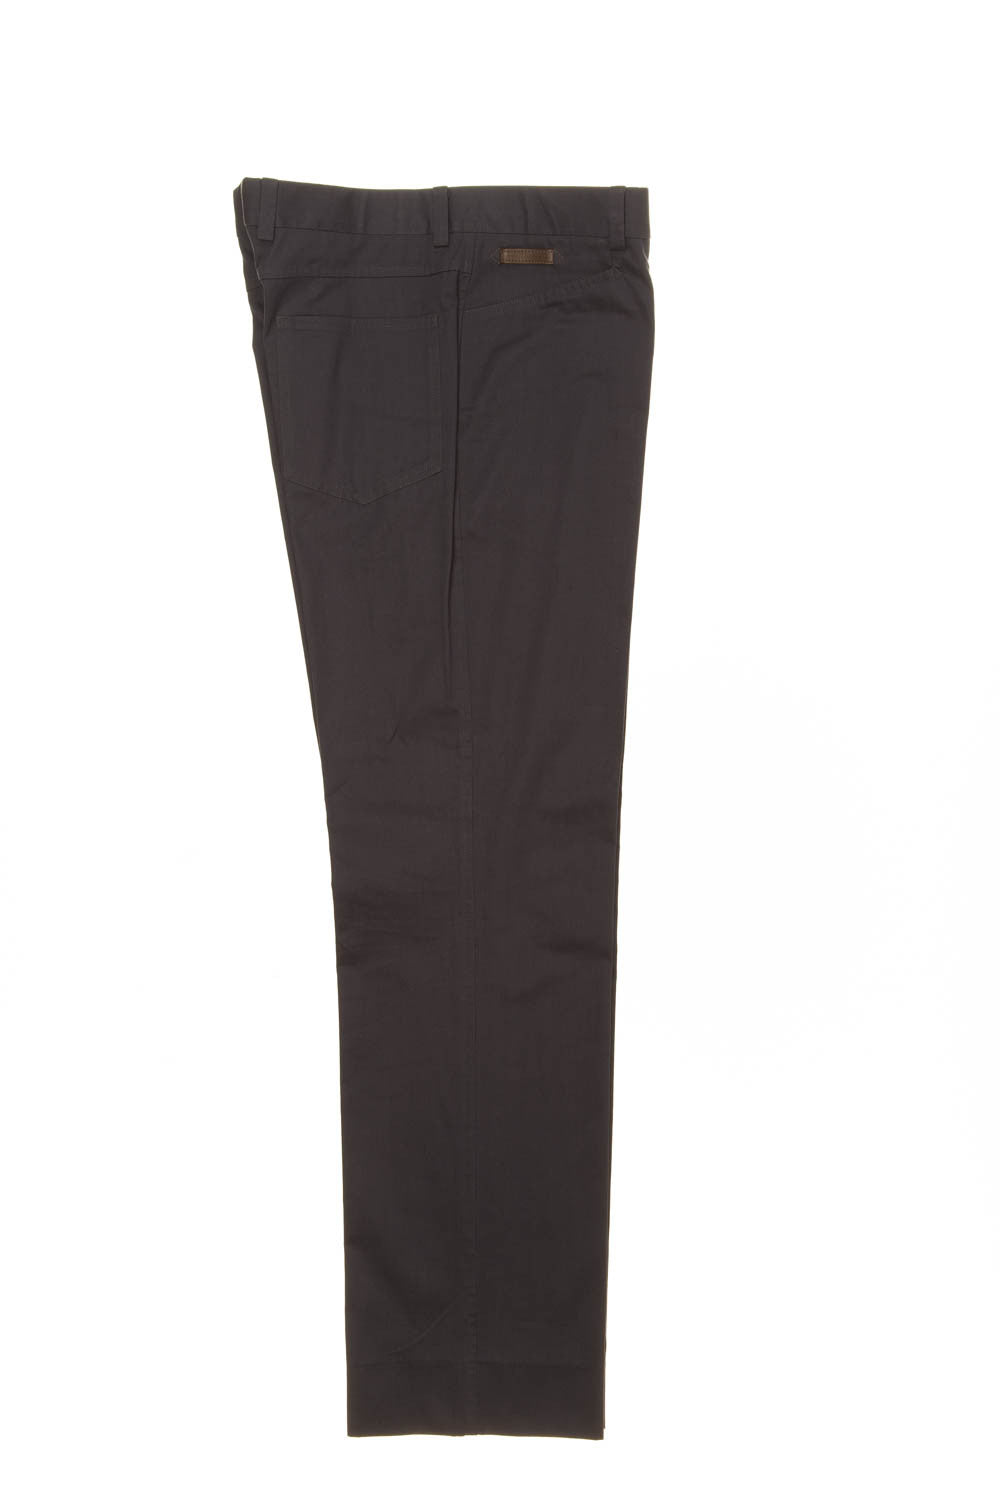 Hermes - Steele Blue Dress Pants - IT 44